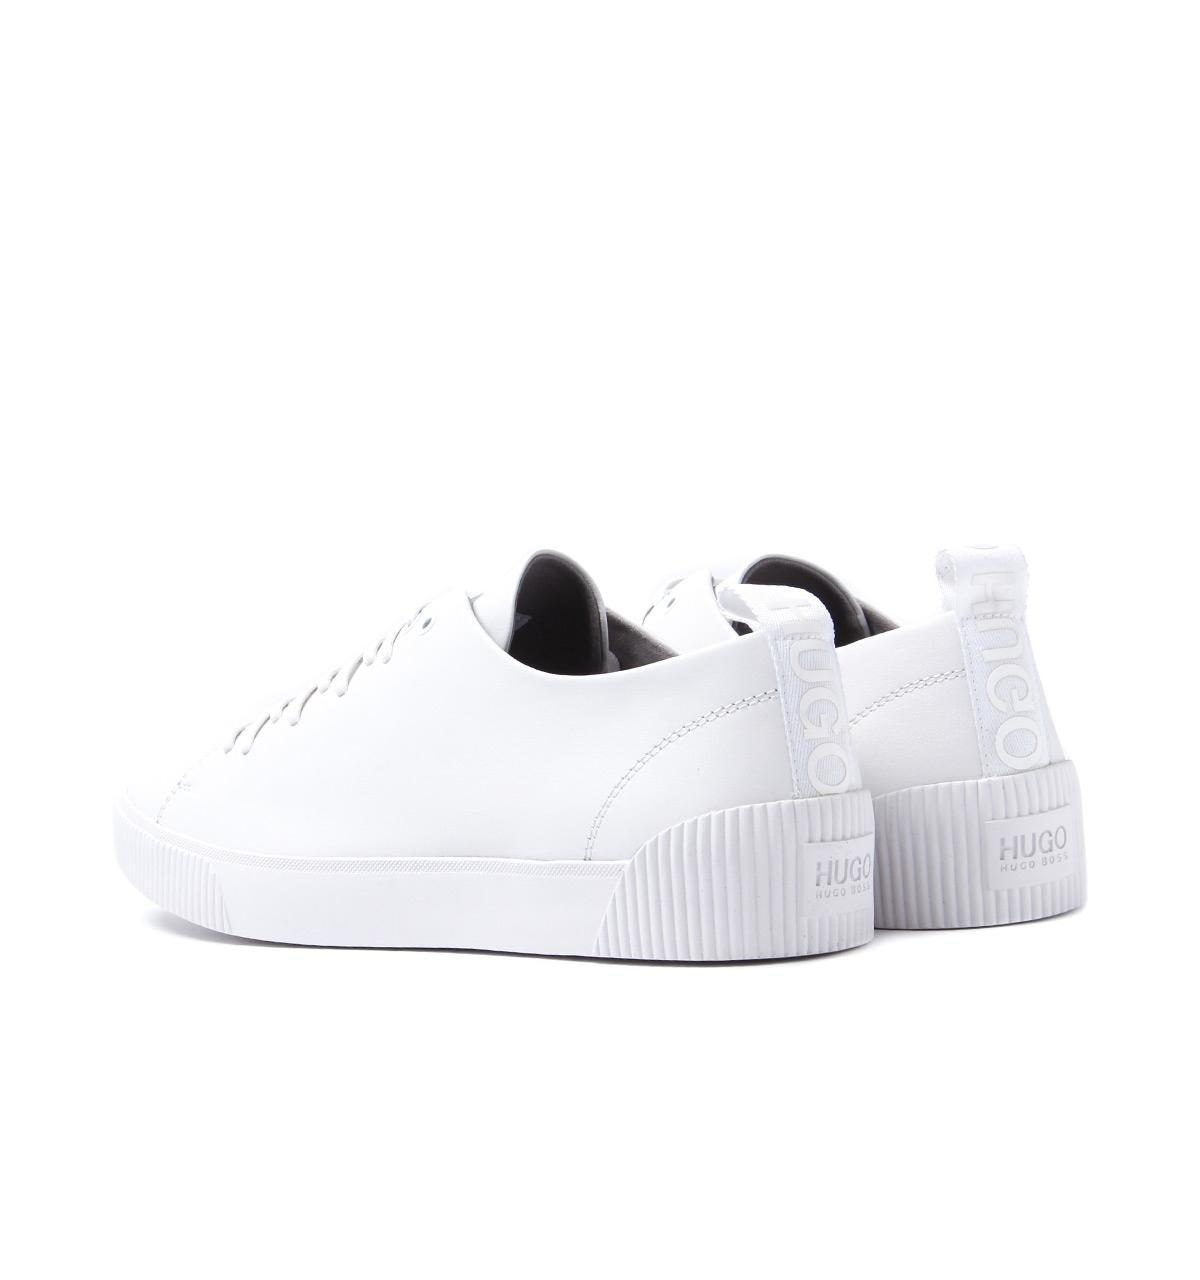 a112851162dc BOSS Hugo White Nappa Leather Zero Tenn Trainers in White for Men - Lyst